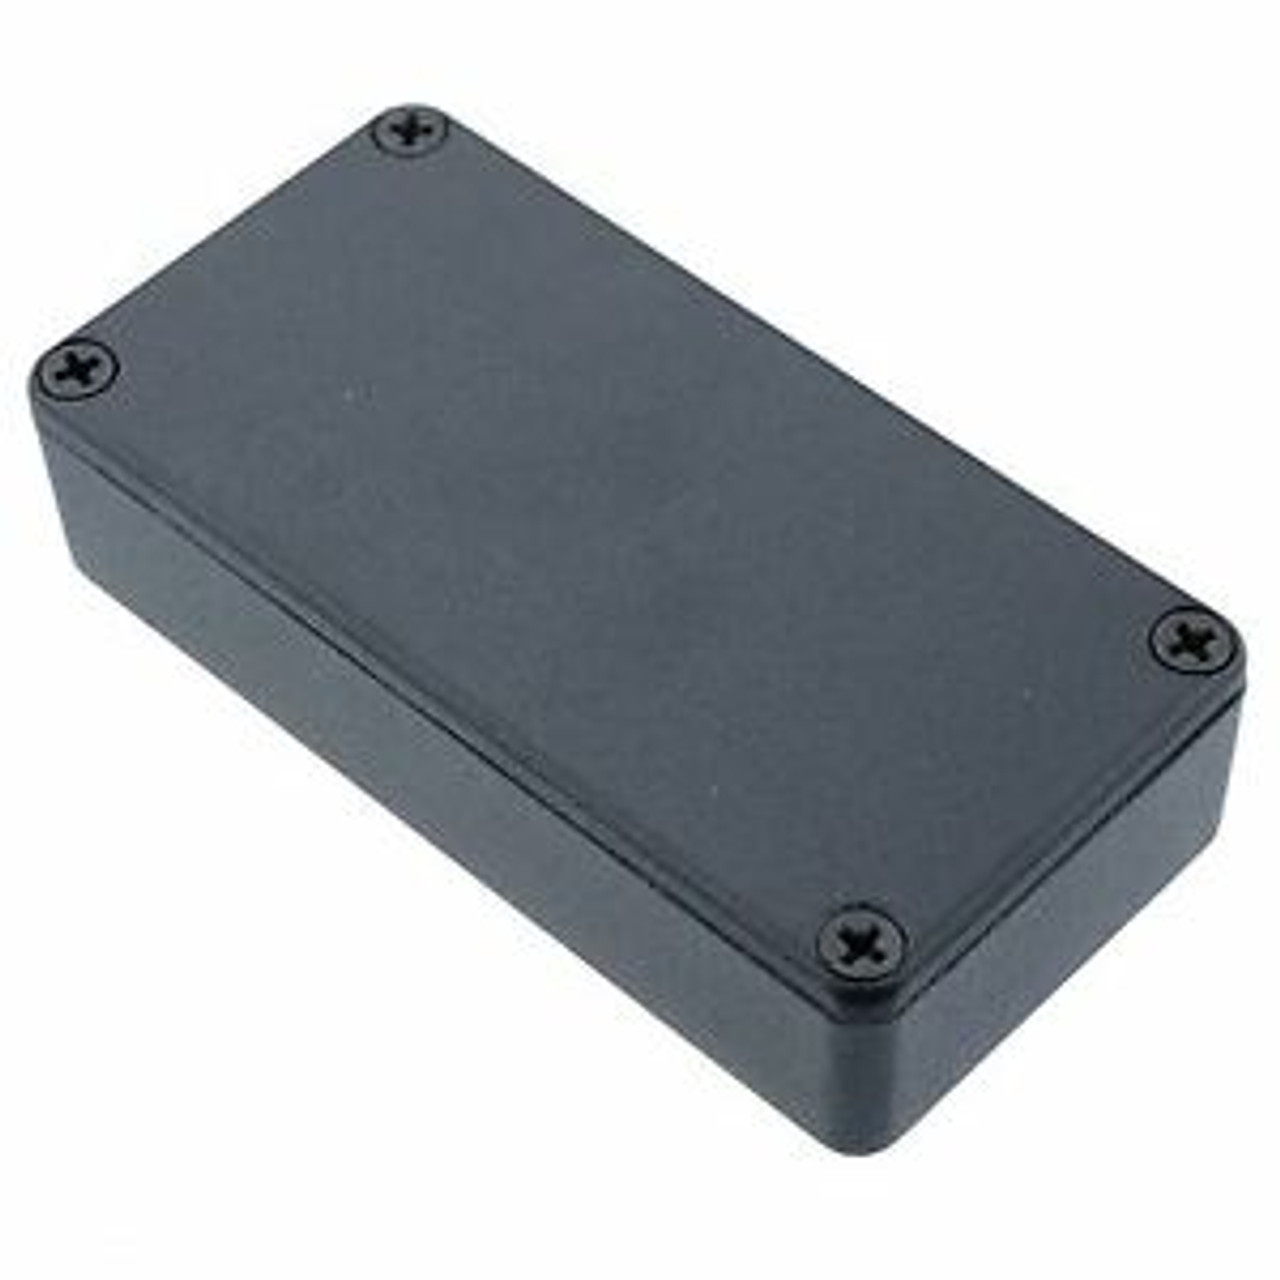 Hammond 1590GBK - Small+ Black Pedal Enclosure